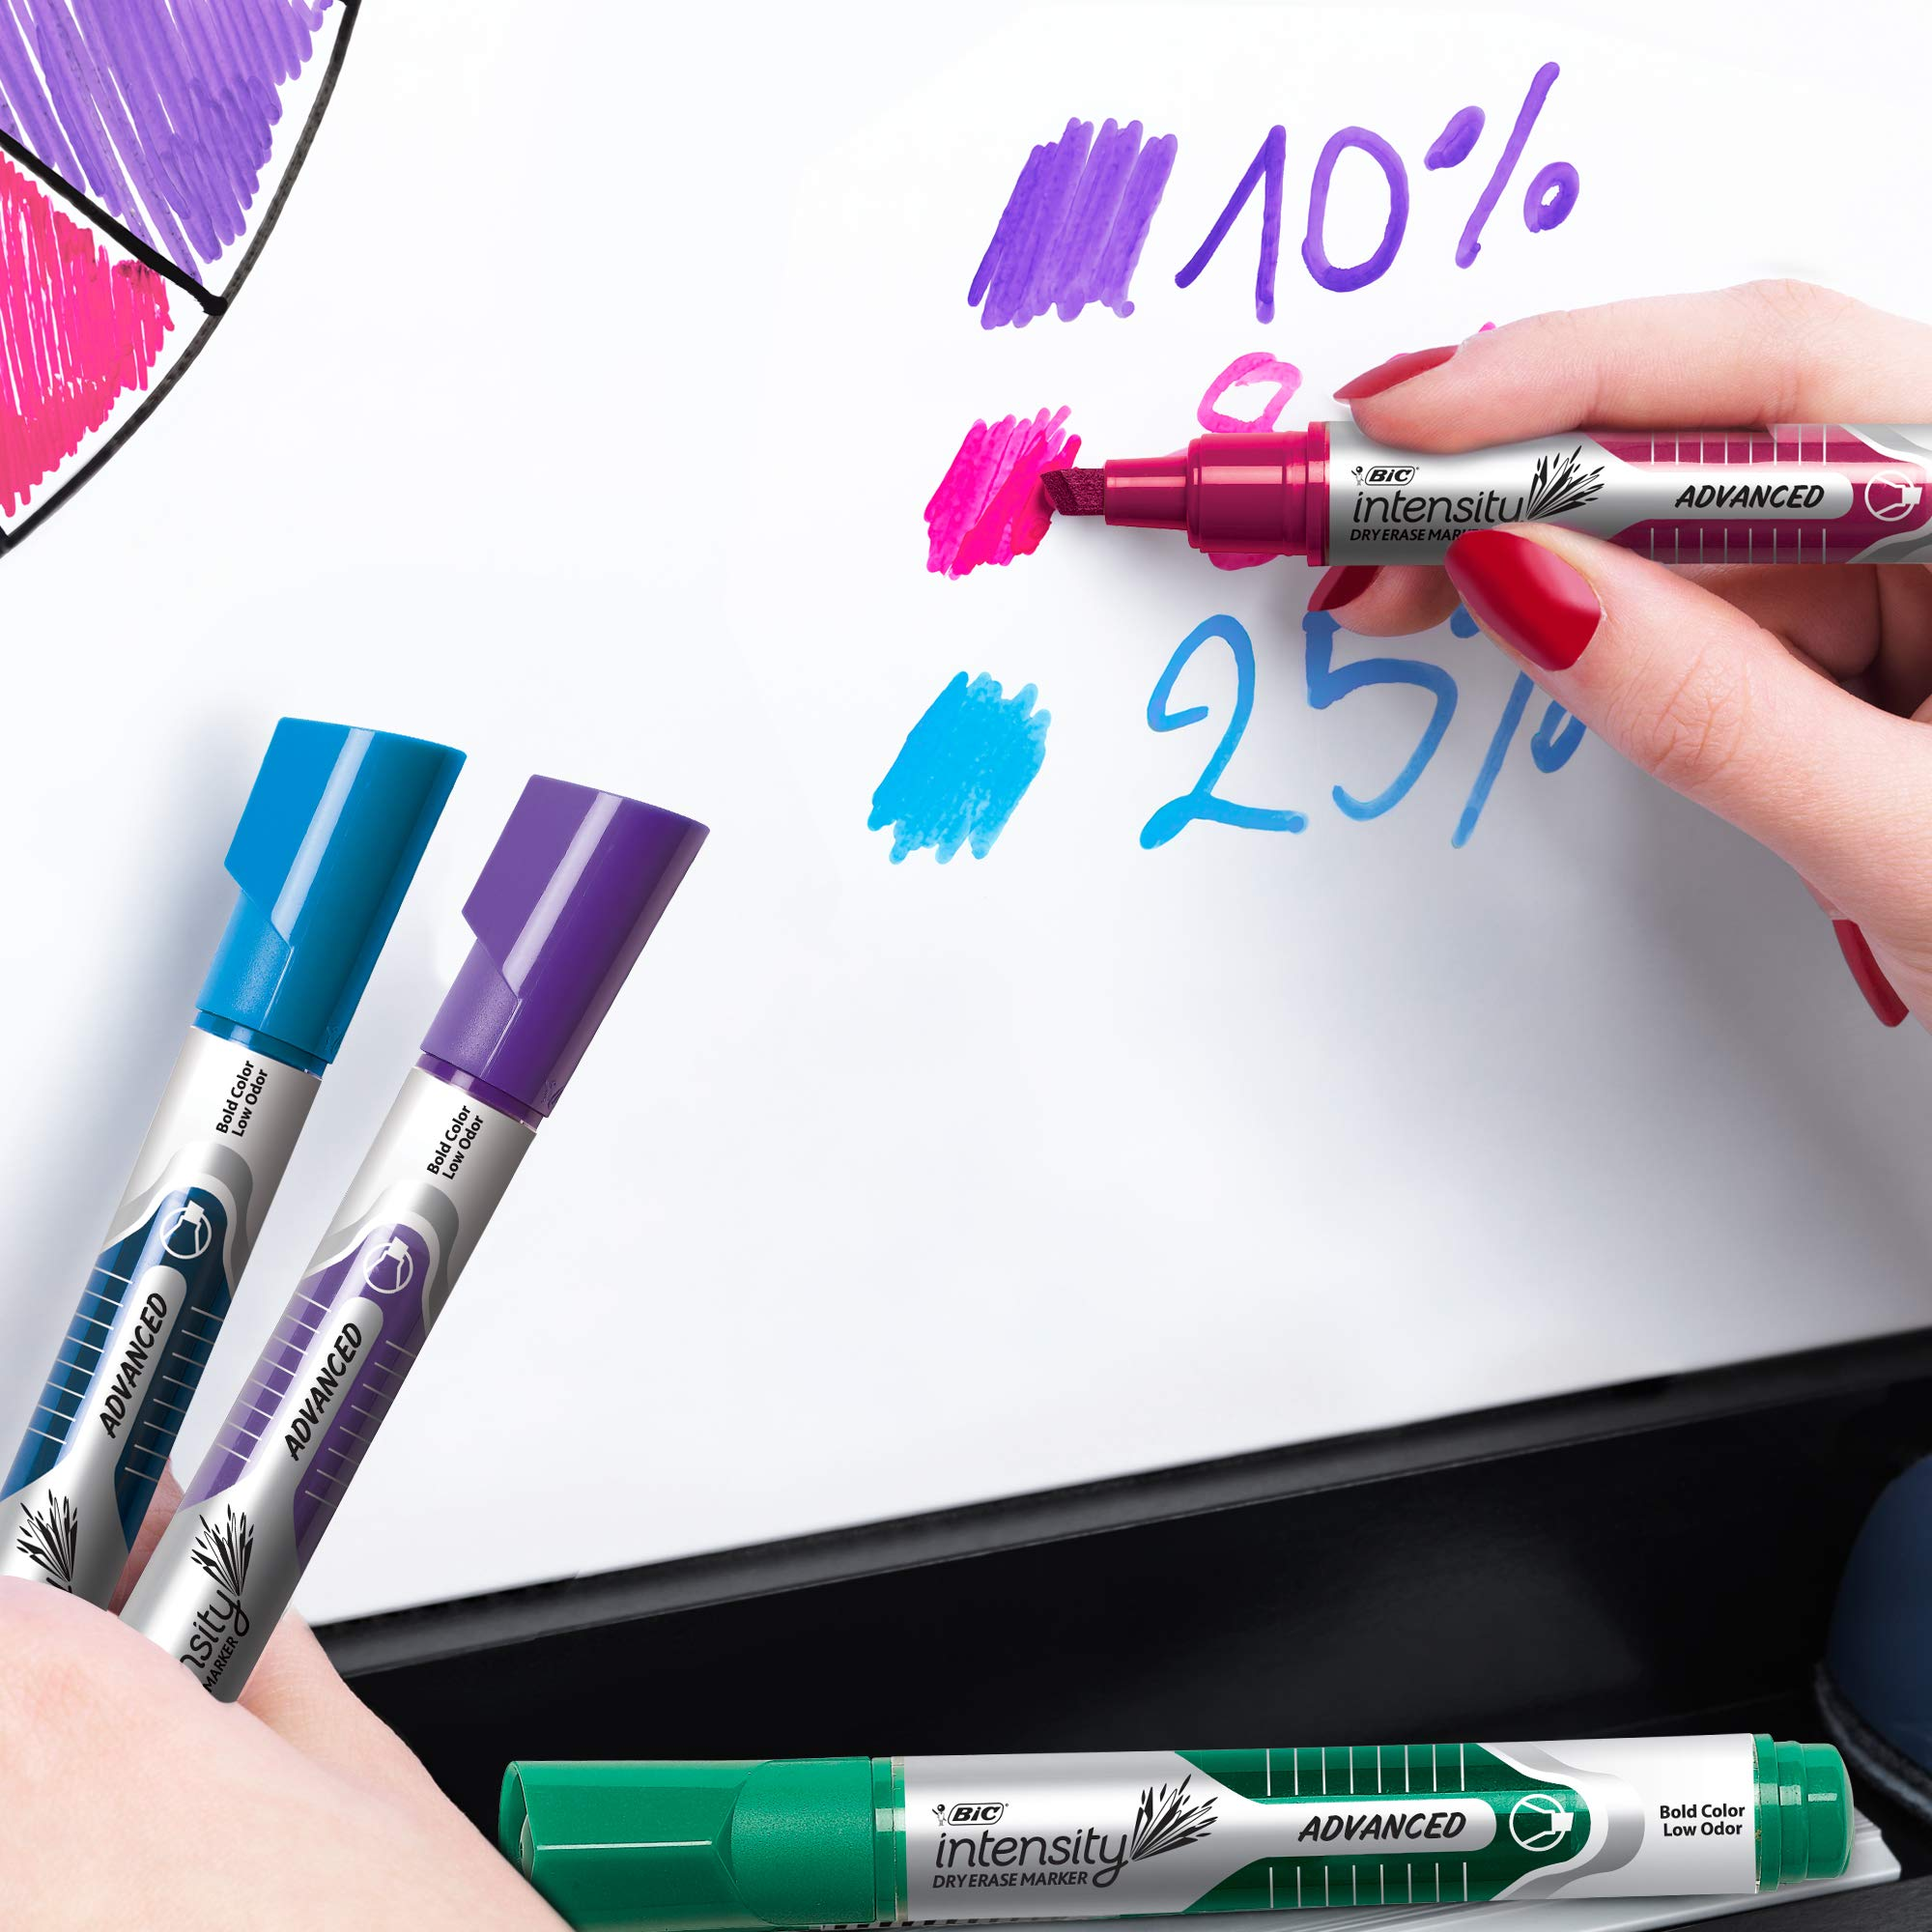 BIC Intensity Advanced Dry Erase Marker, Tank Style, Chisel Tip, Assorted Colors, 24-Count (packaging may vary) by BIC (Image #5)